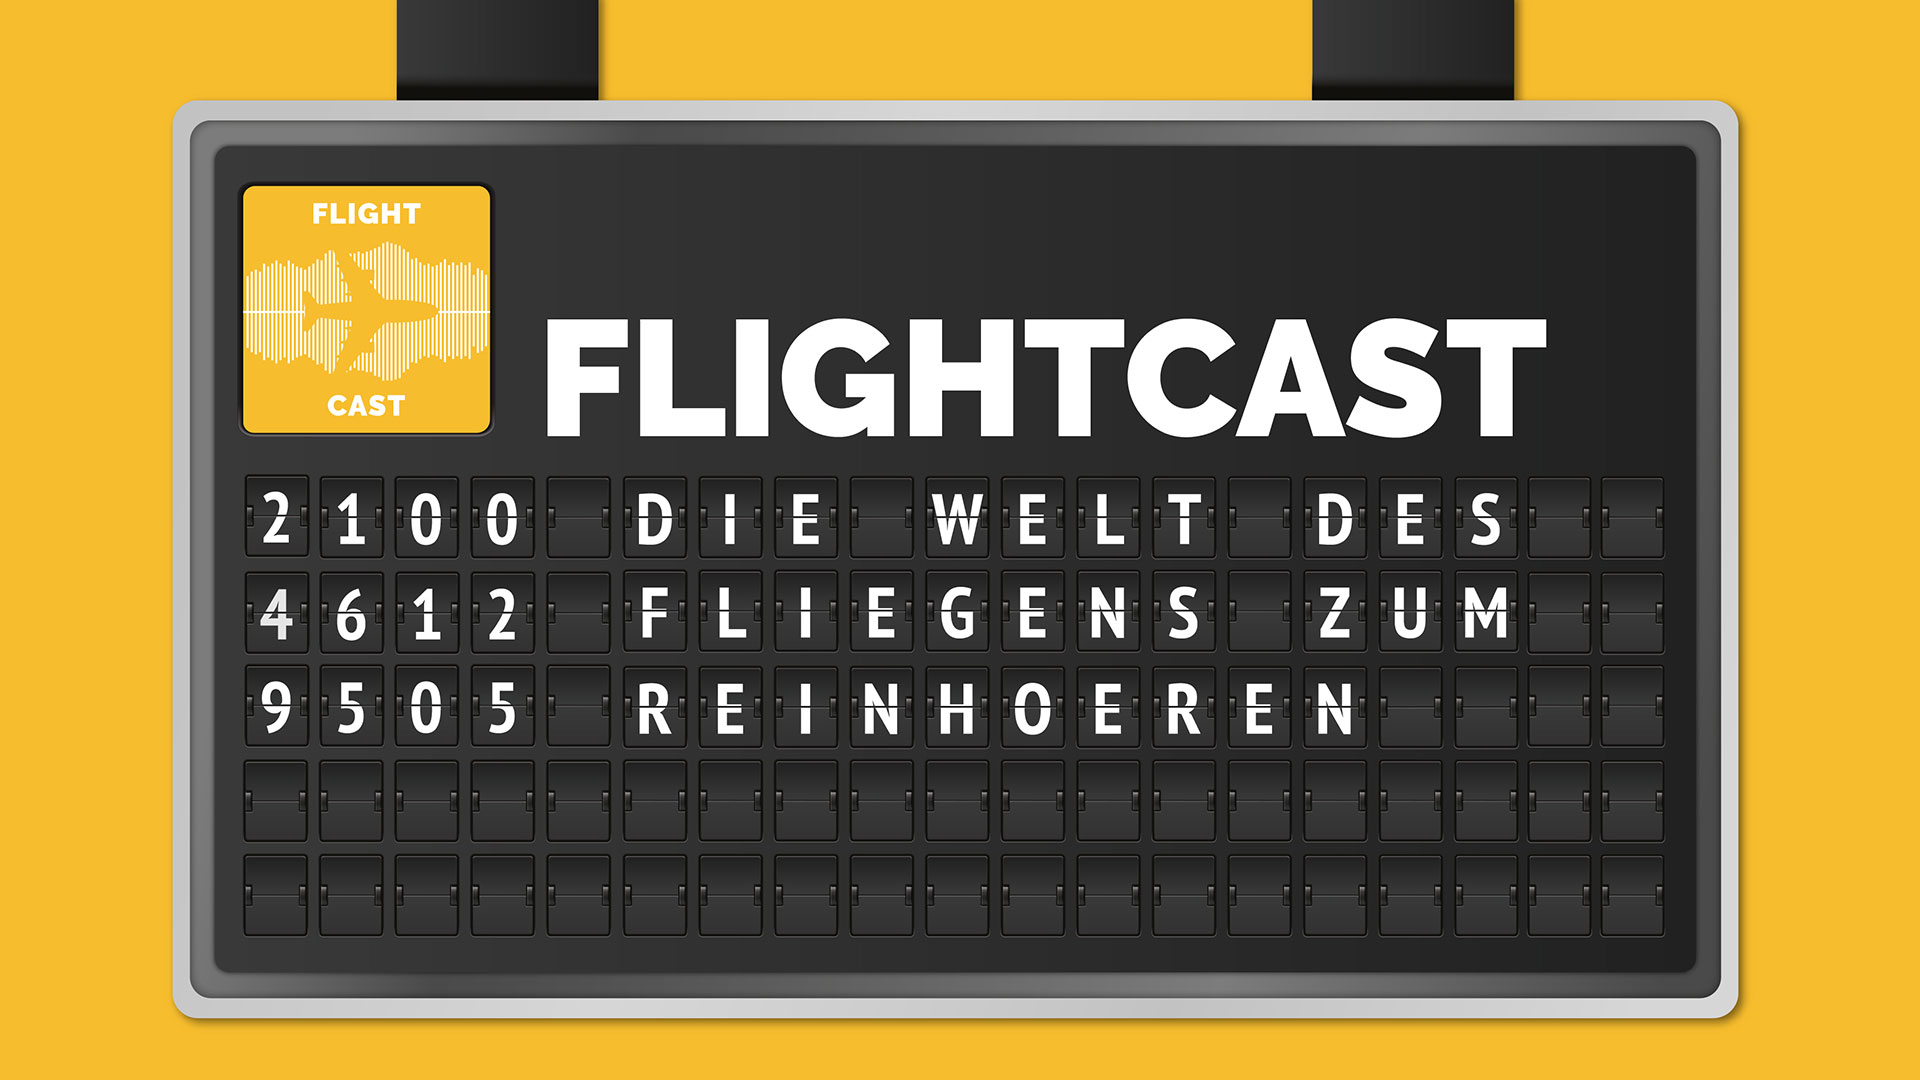 flightcast_header_1920x1080